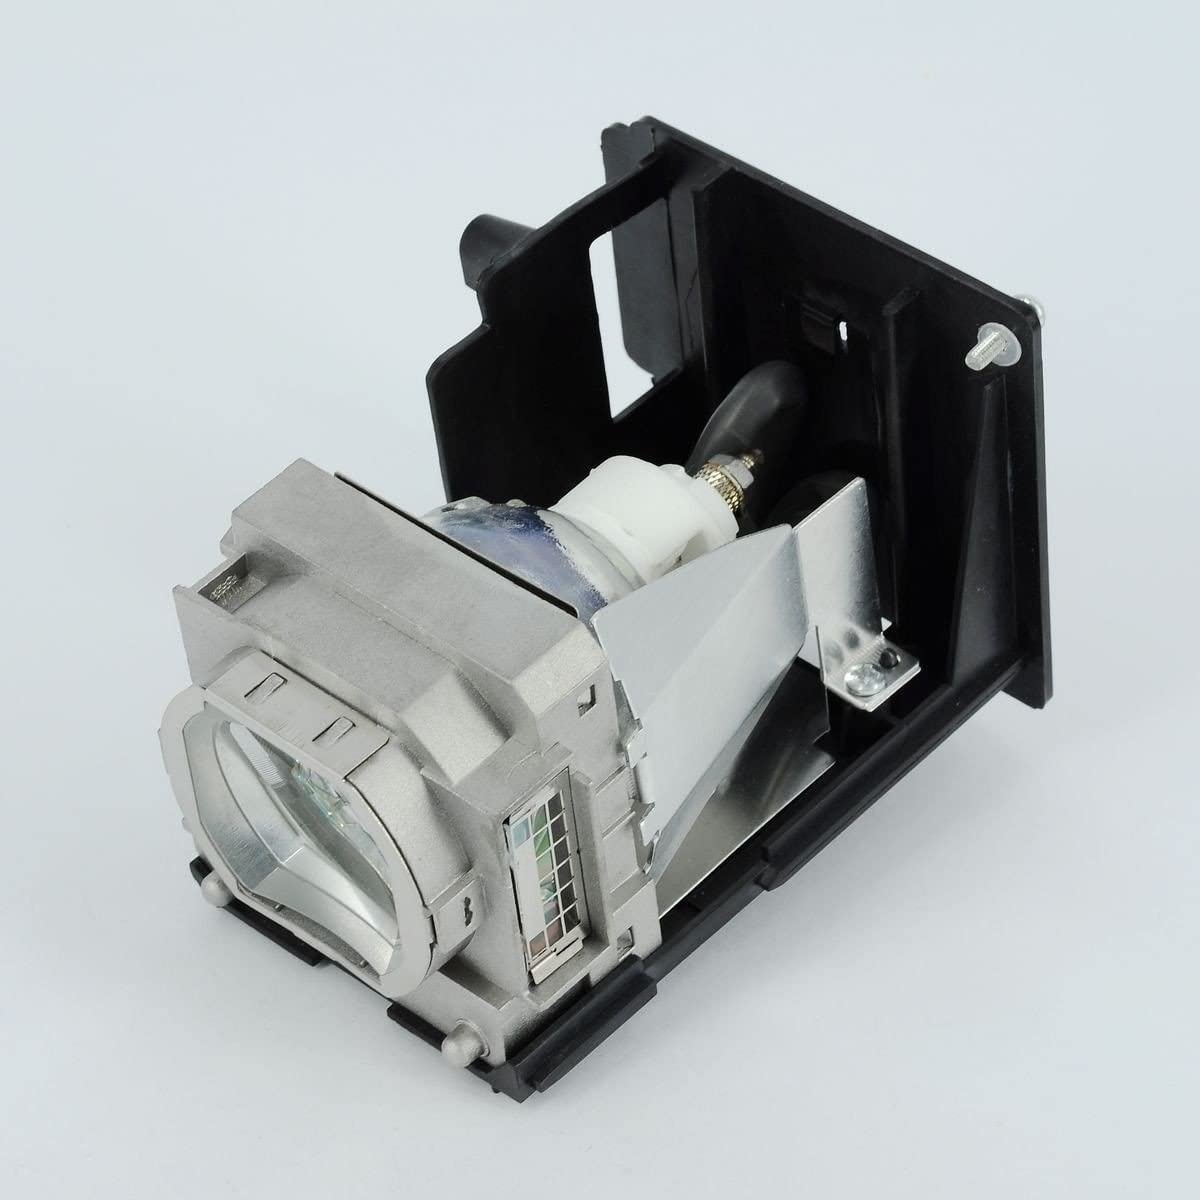 Projector Lamp Replacement for Mitsubishi HC6800 Projector Lamp Assembly with Genuine Original Bulb Inside